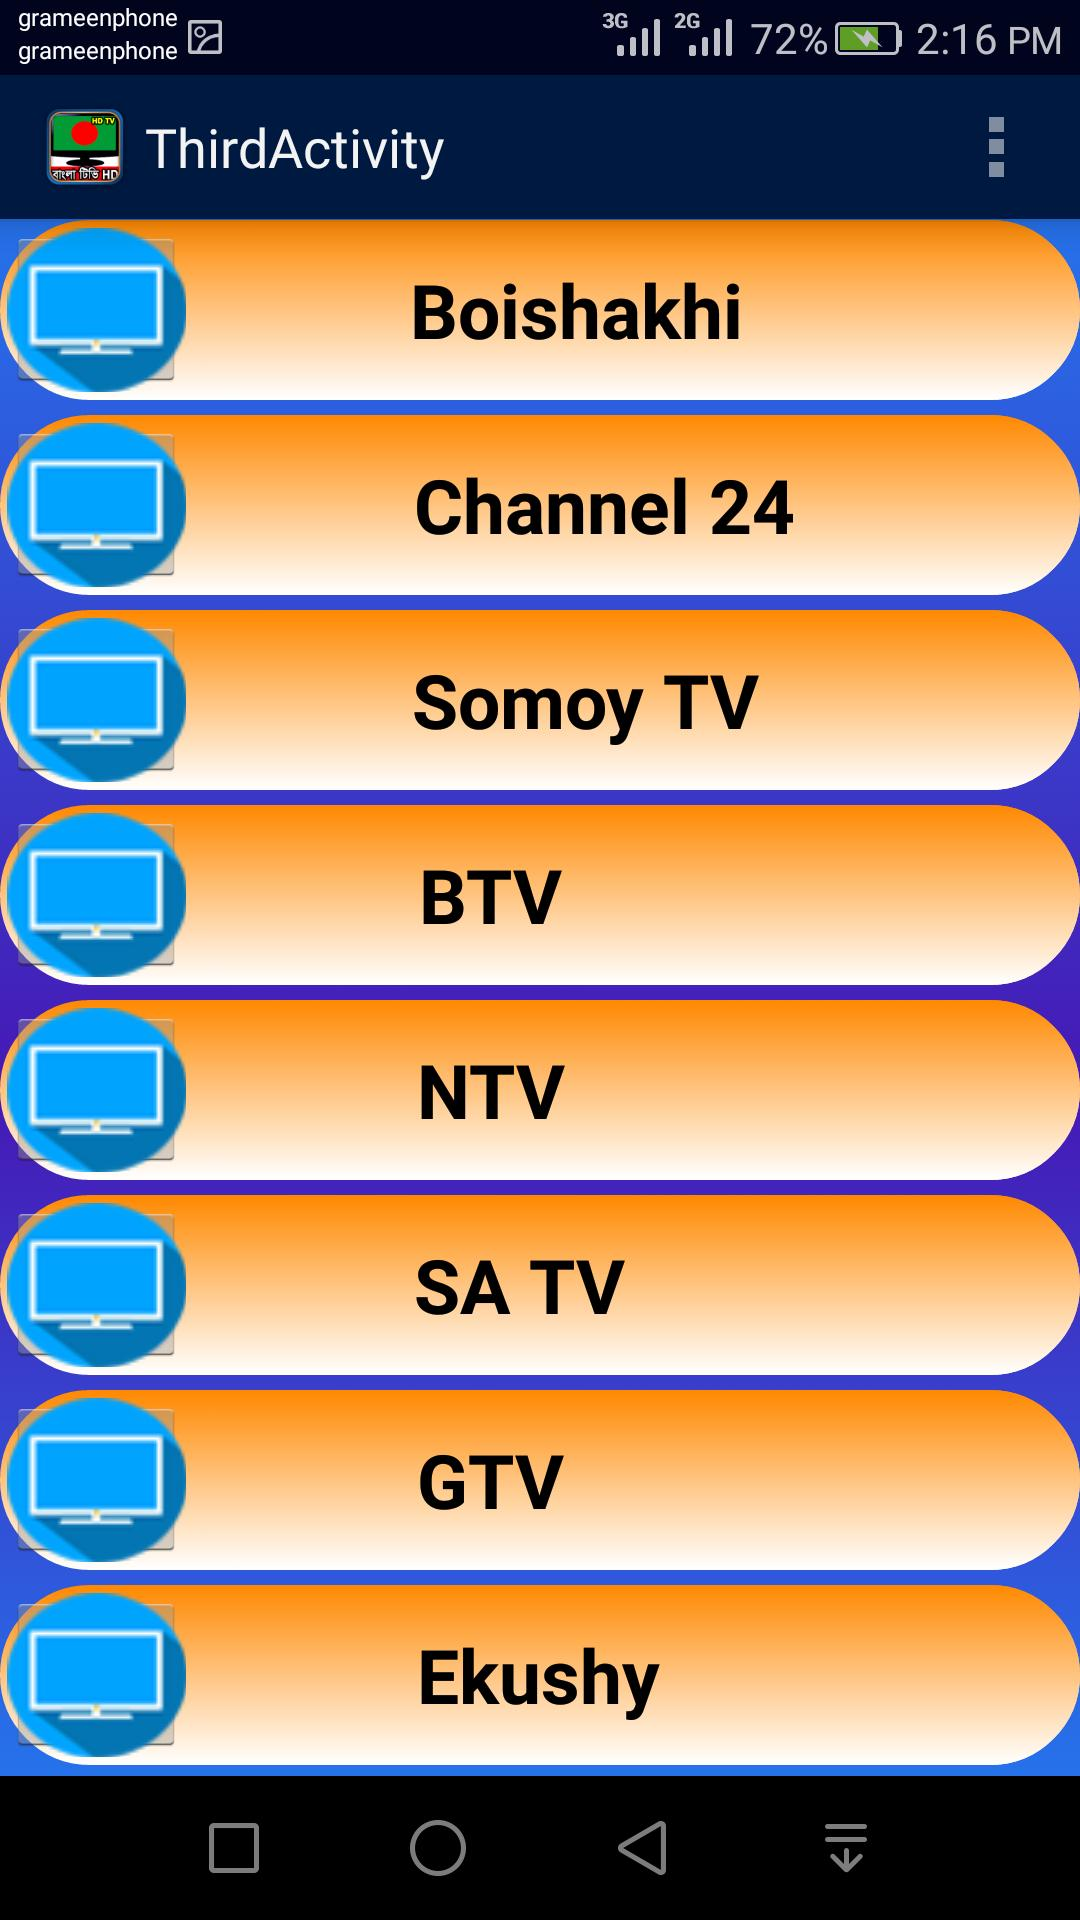 All In One Bangla TV Channels for Android - APK Download